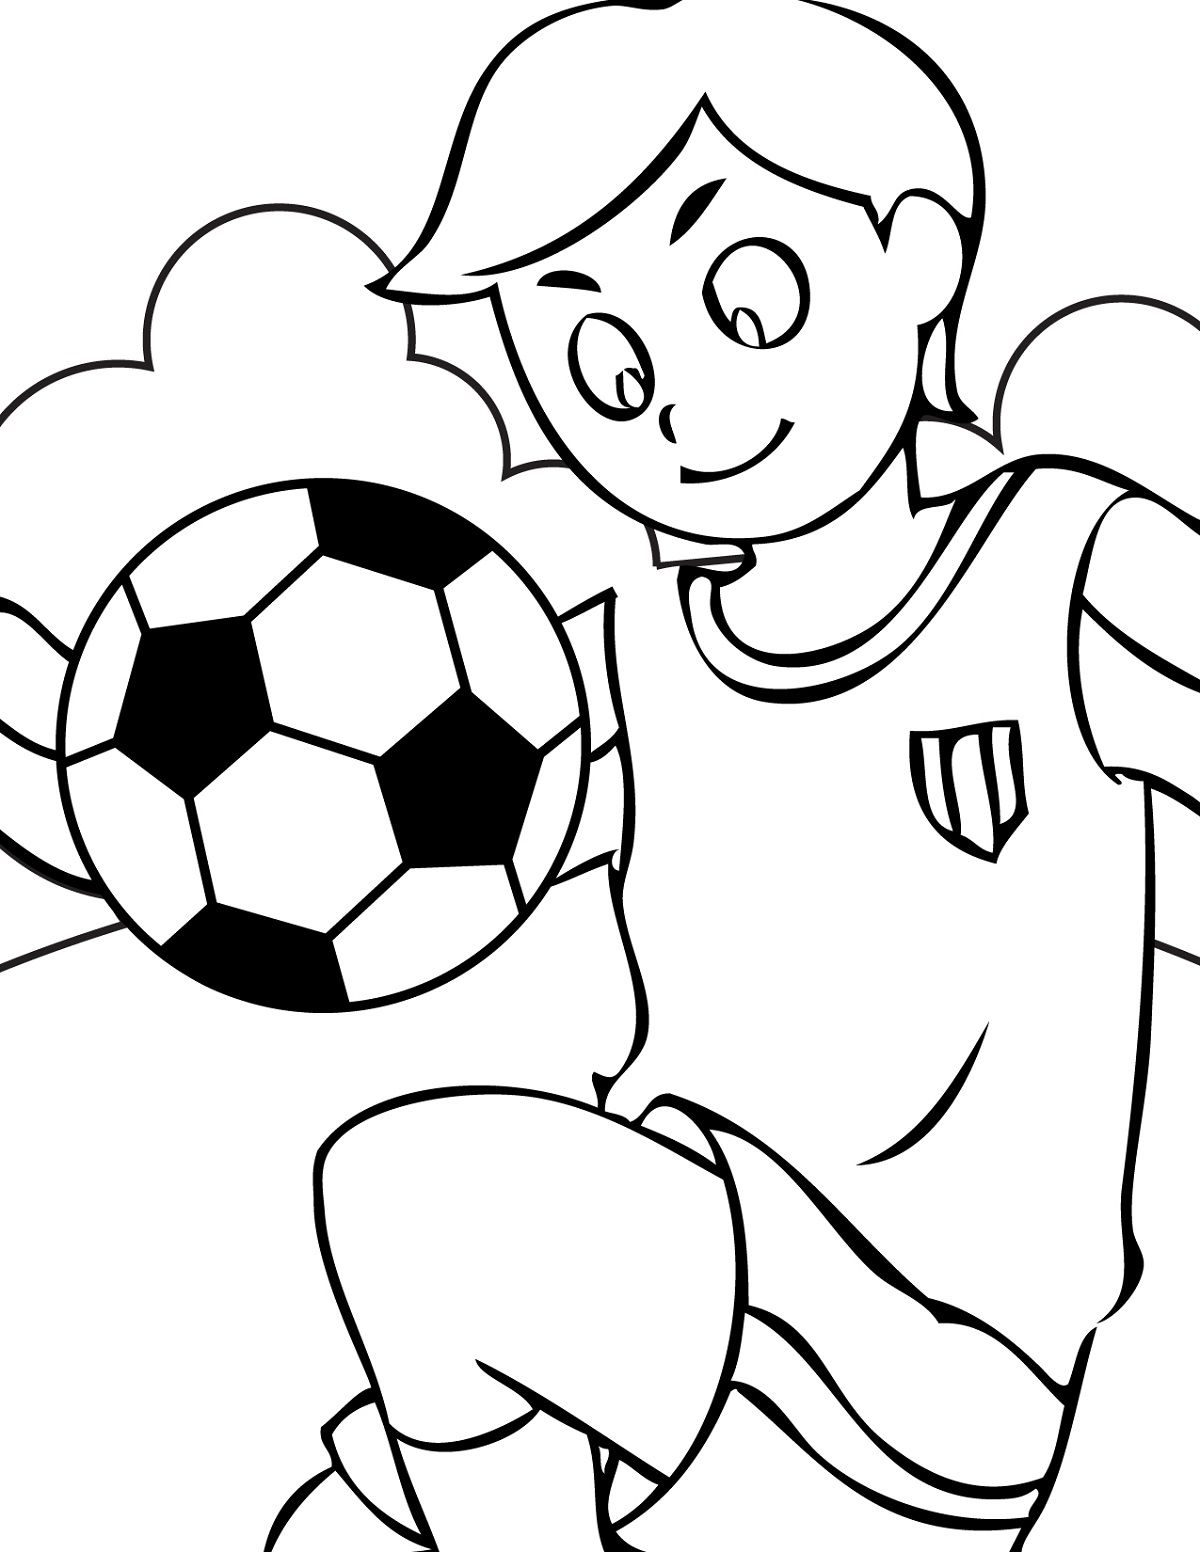 Soccer Worksheets For Kids Learning Kiddo Shelter Sports Coloring Pages Football Coloring Pages Coloring Pages For Kids